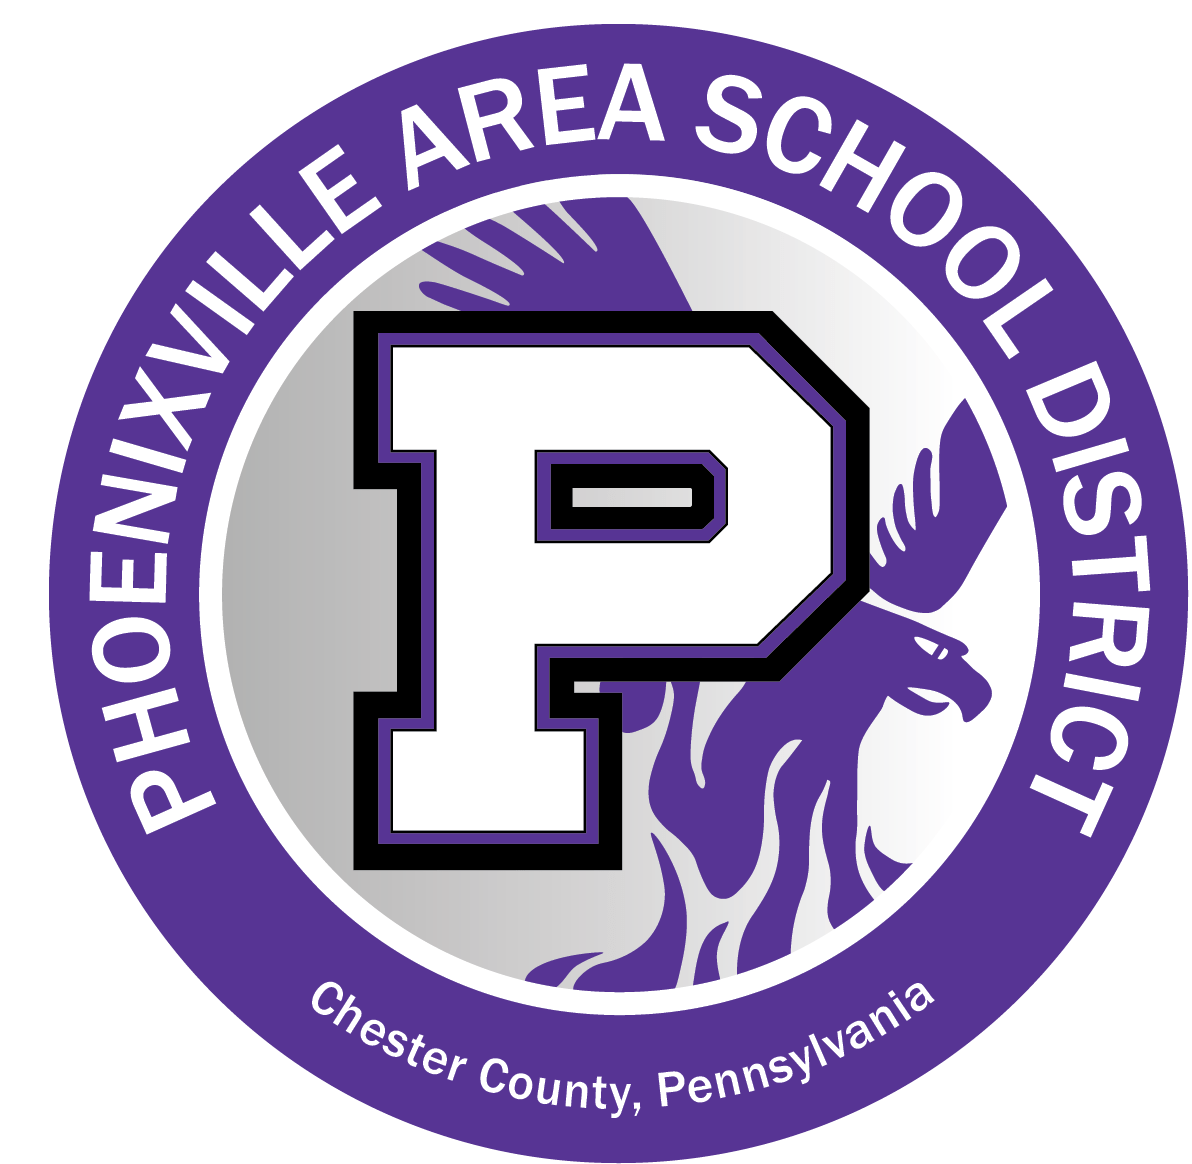 Phoenixville Area School District Seal